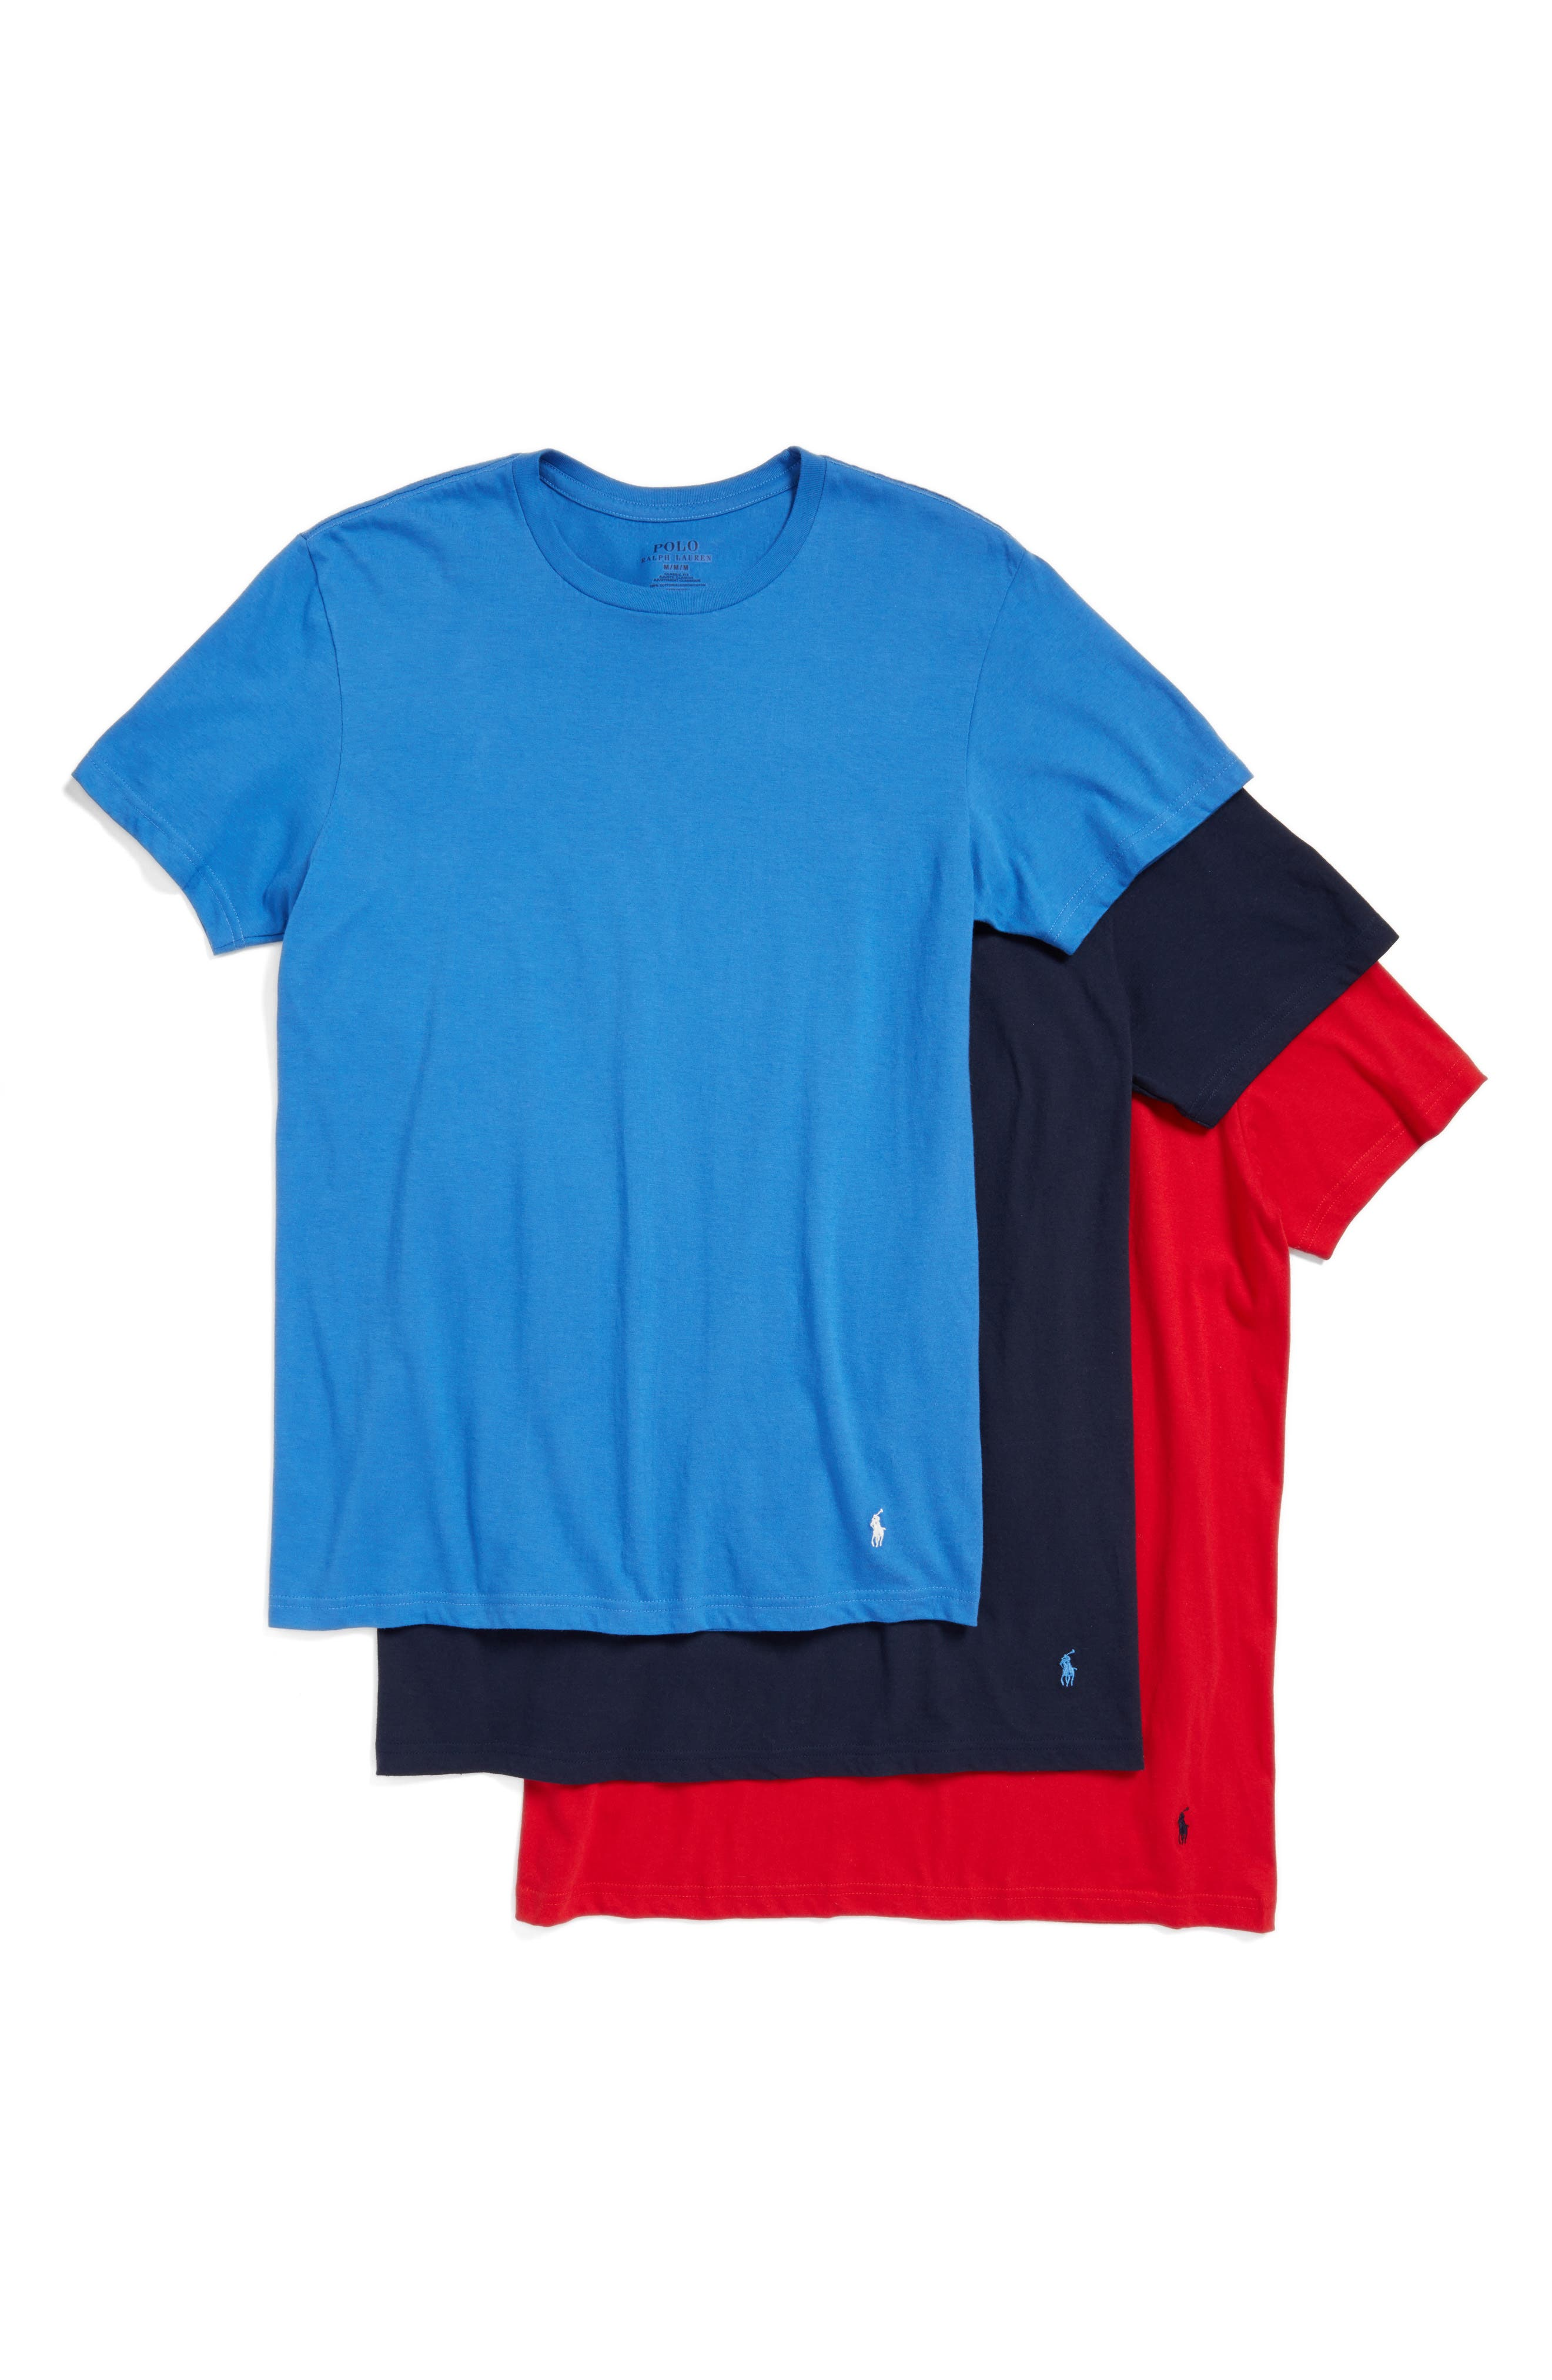 3-Pack Crewneck T-Shirts,                         Main,                         color, Racer Blue/ Red/ Navy